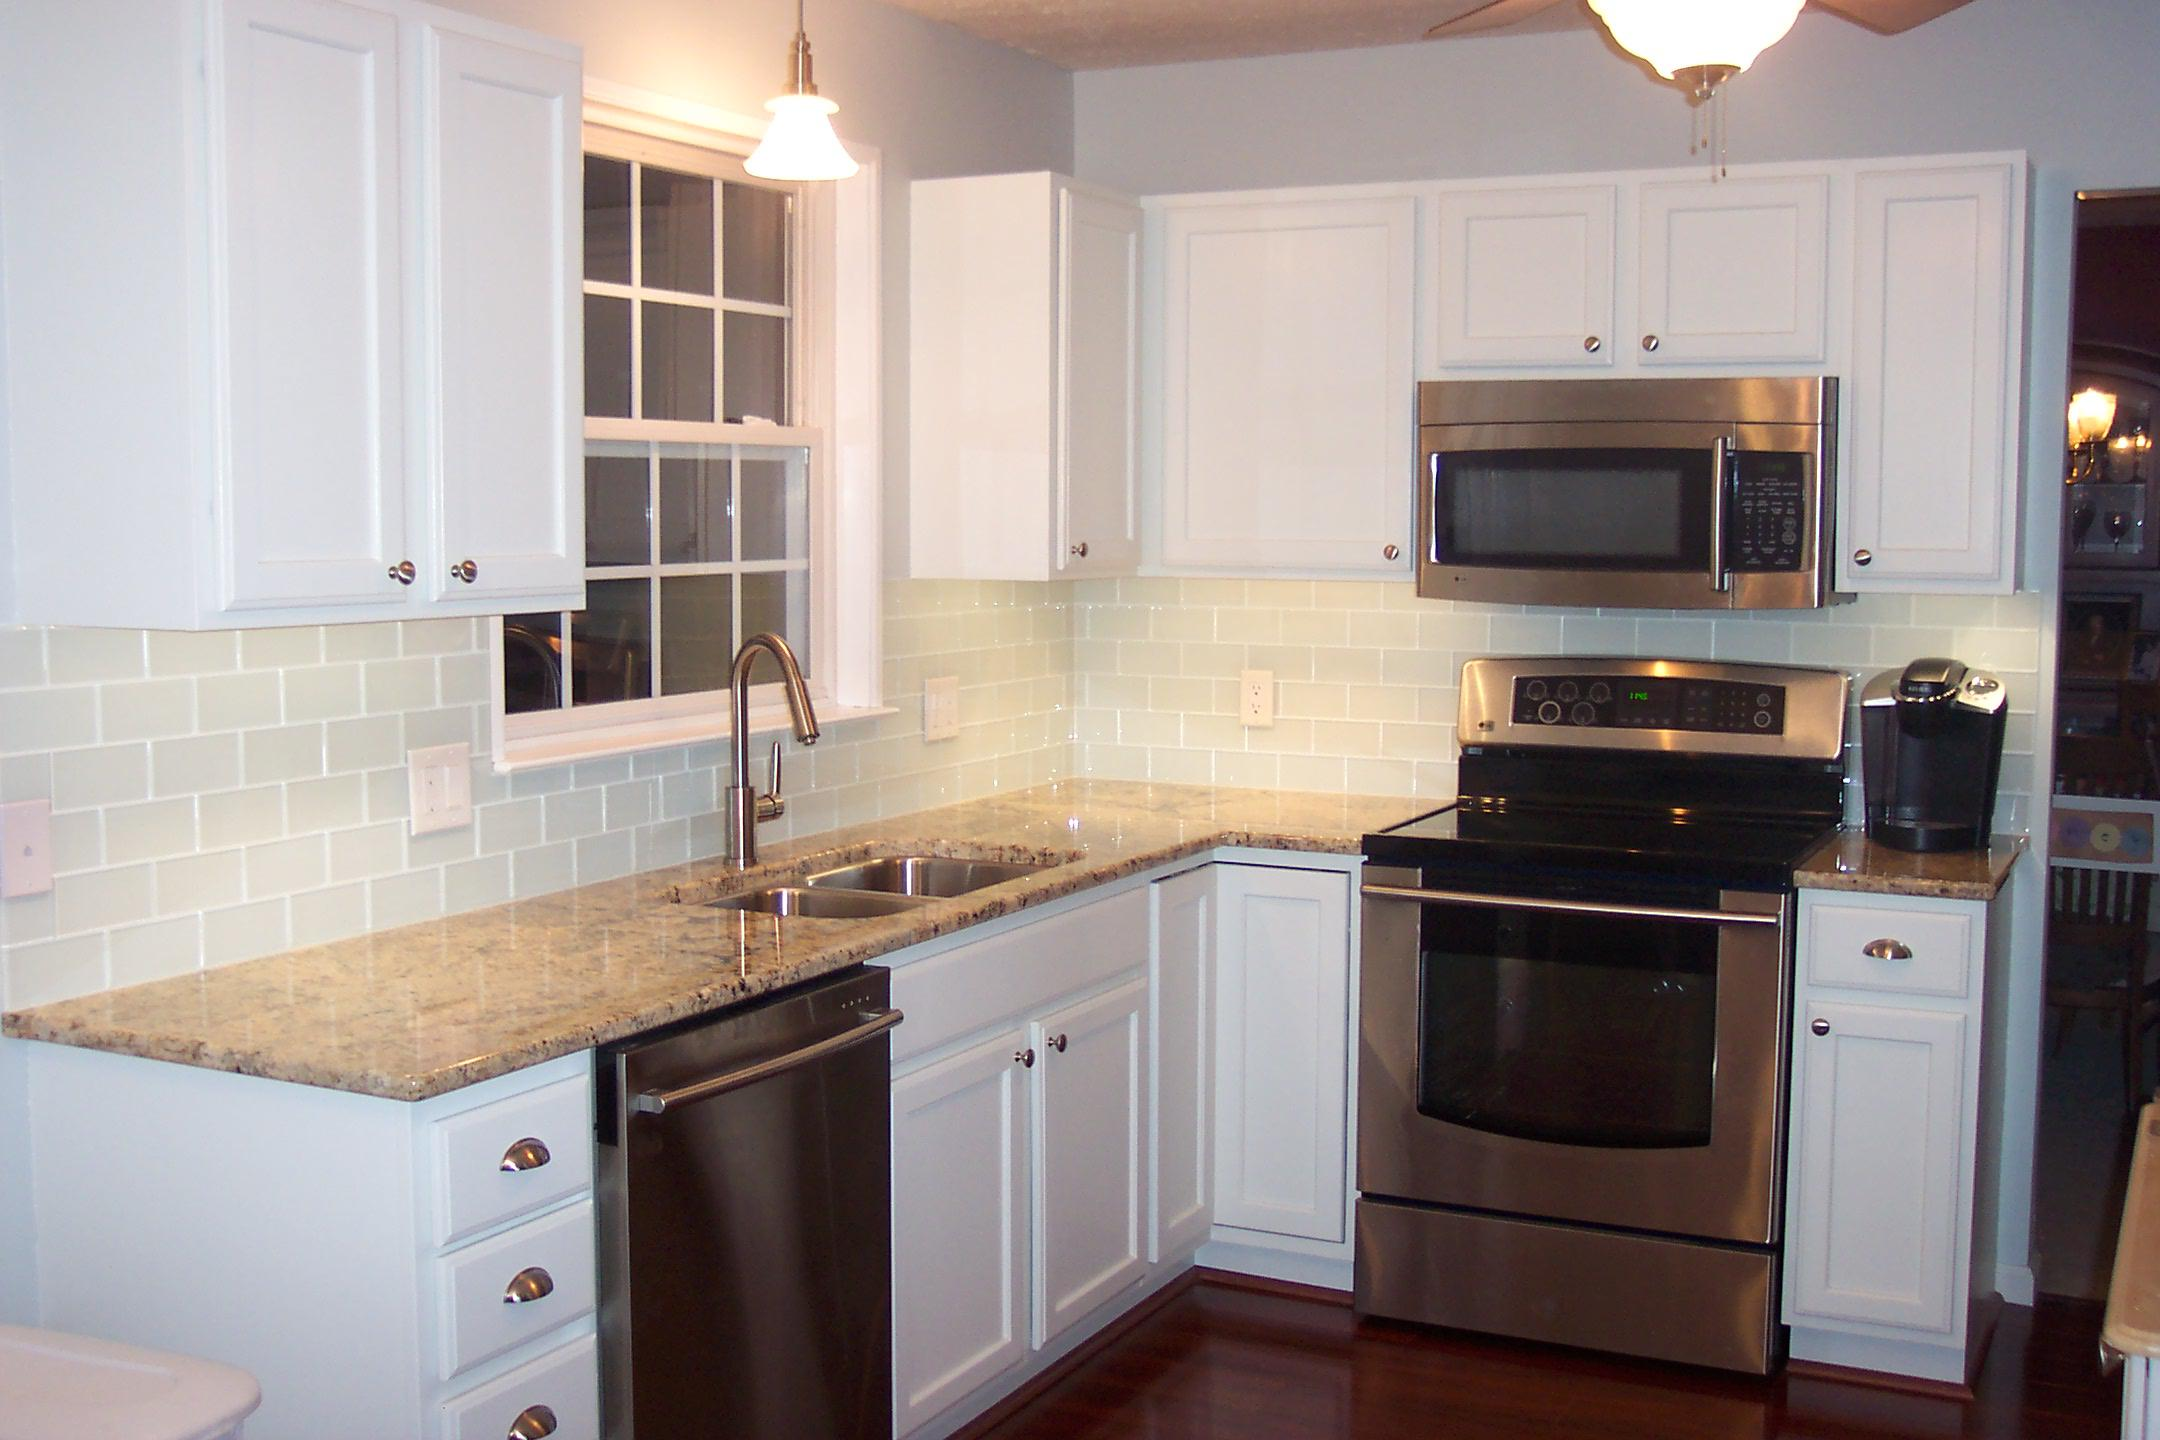 Image of: subway tile backsplash around window